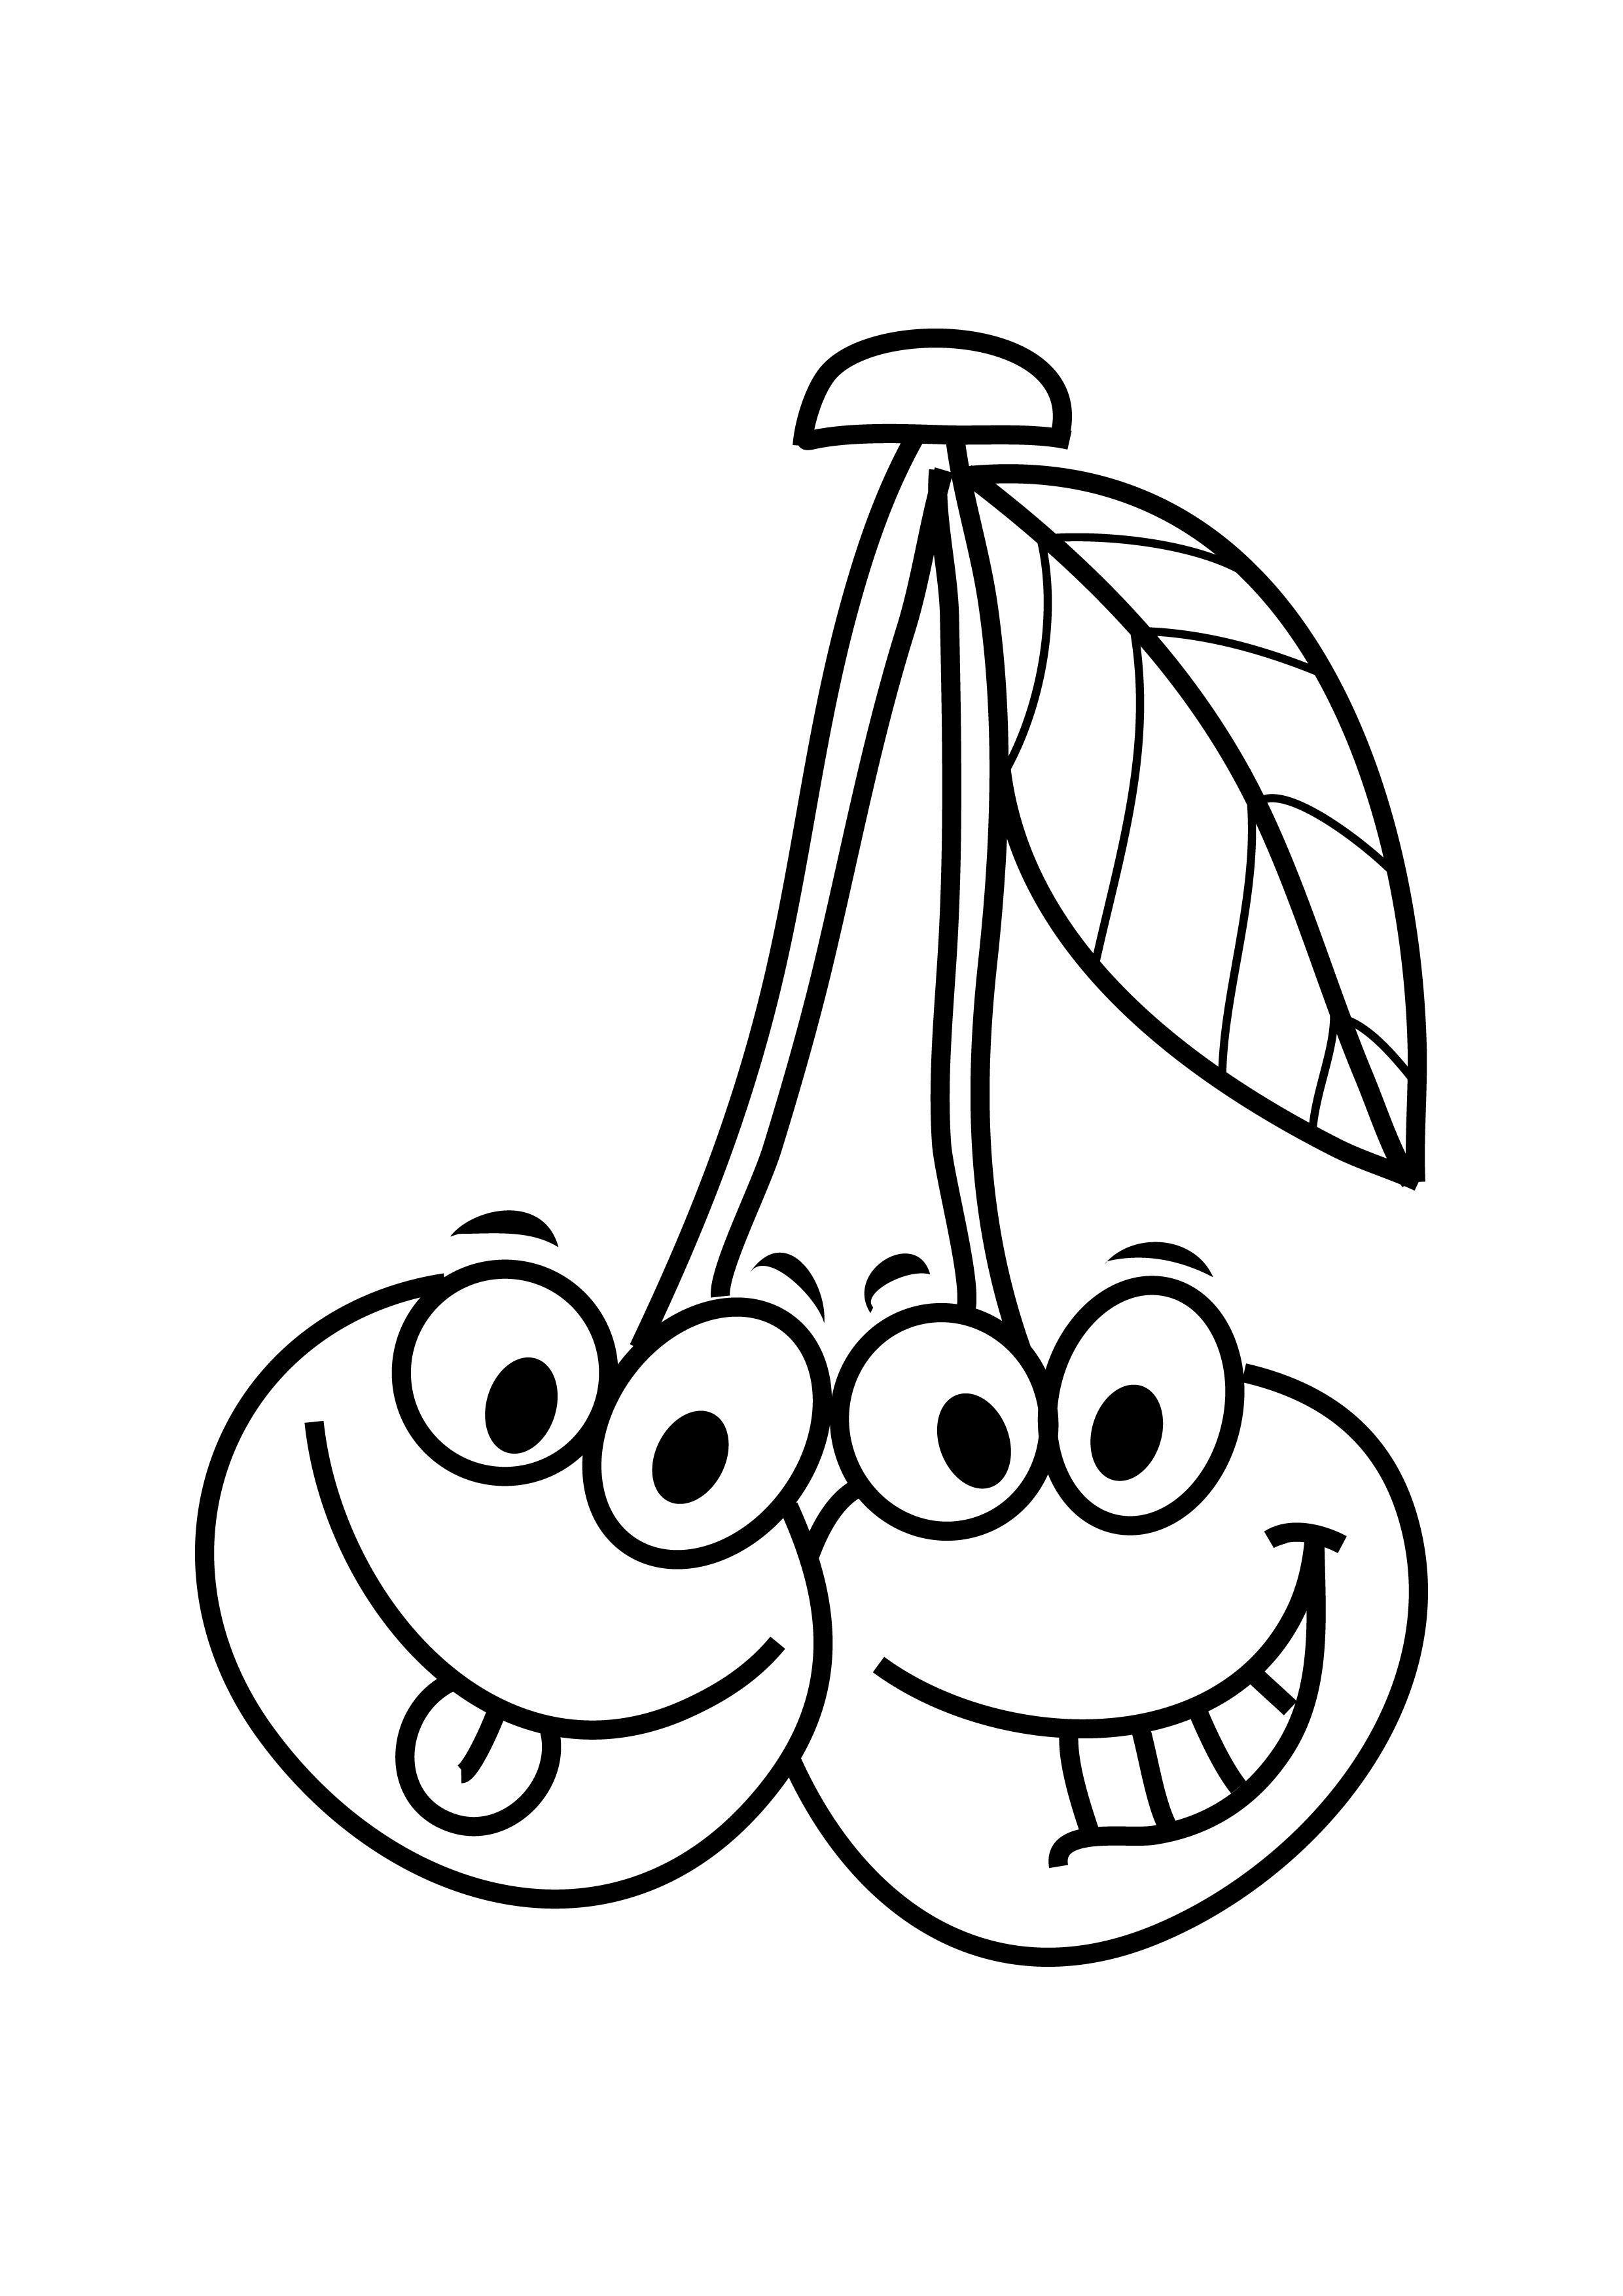 Smart Fruits And Vegetables Coloring Pages